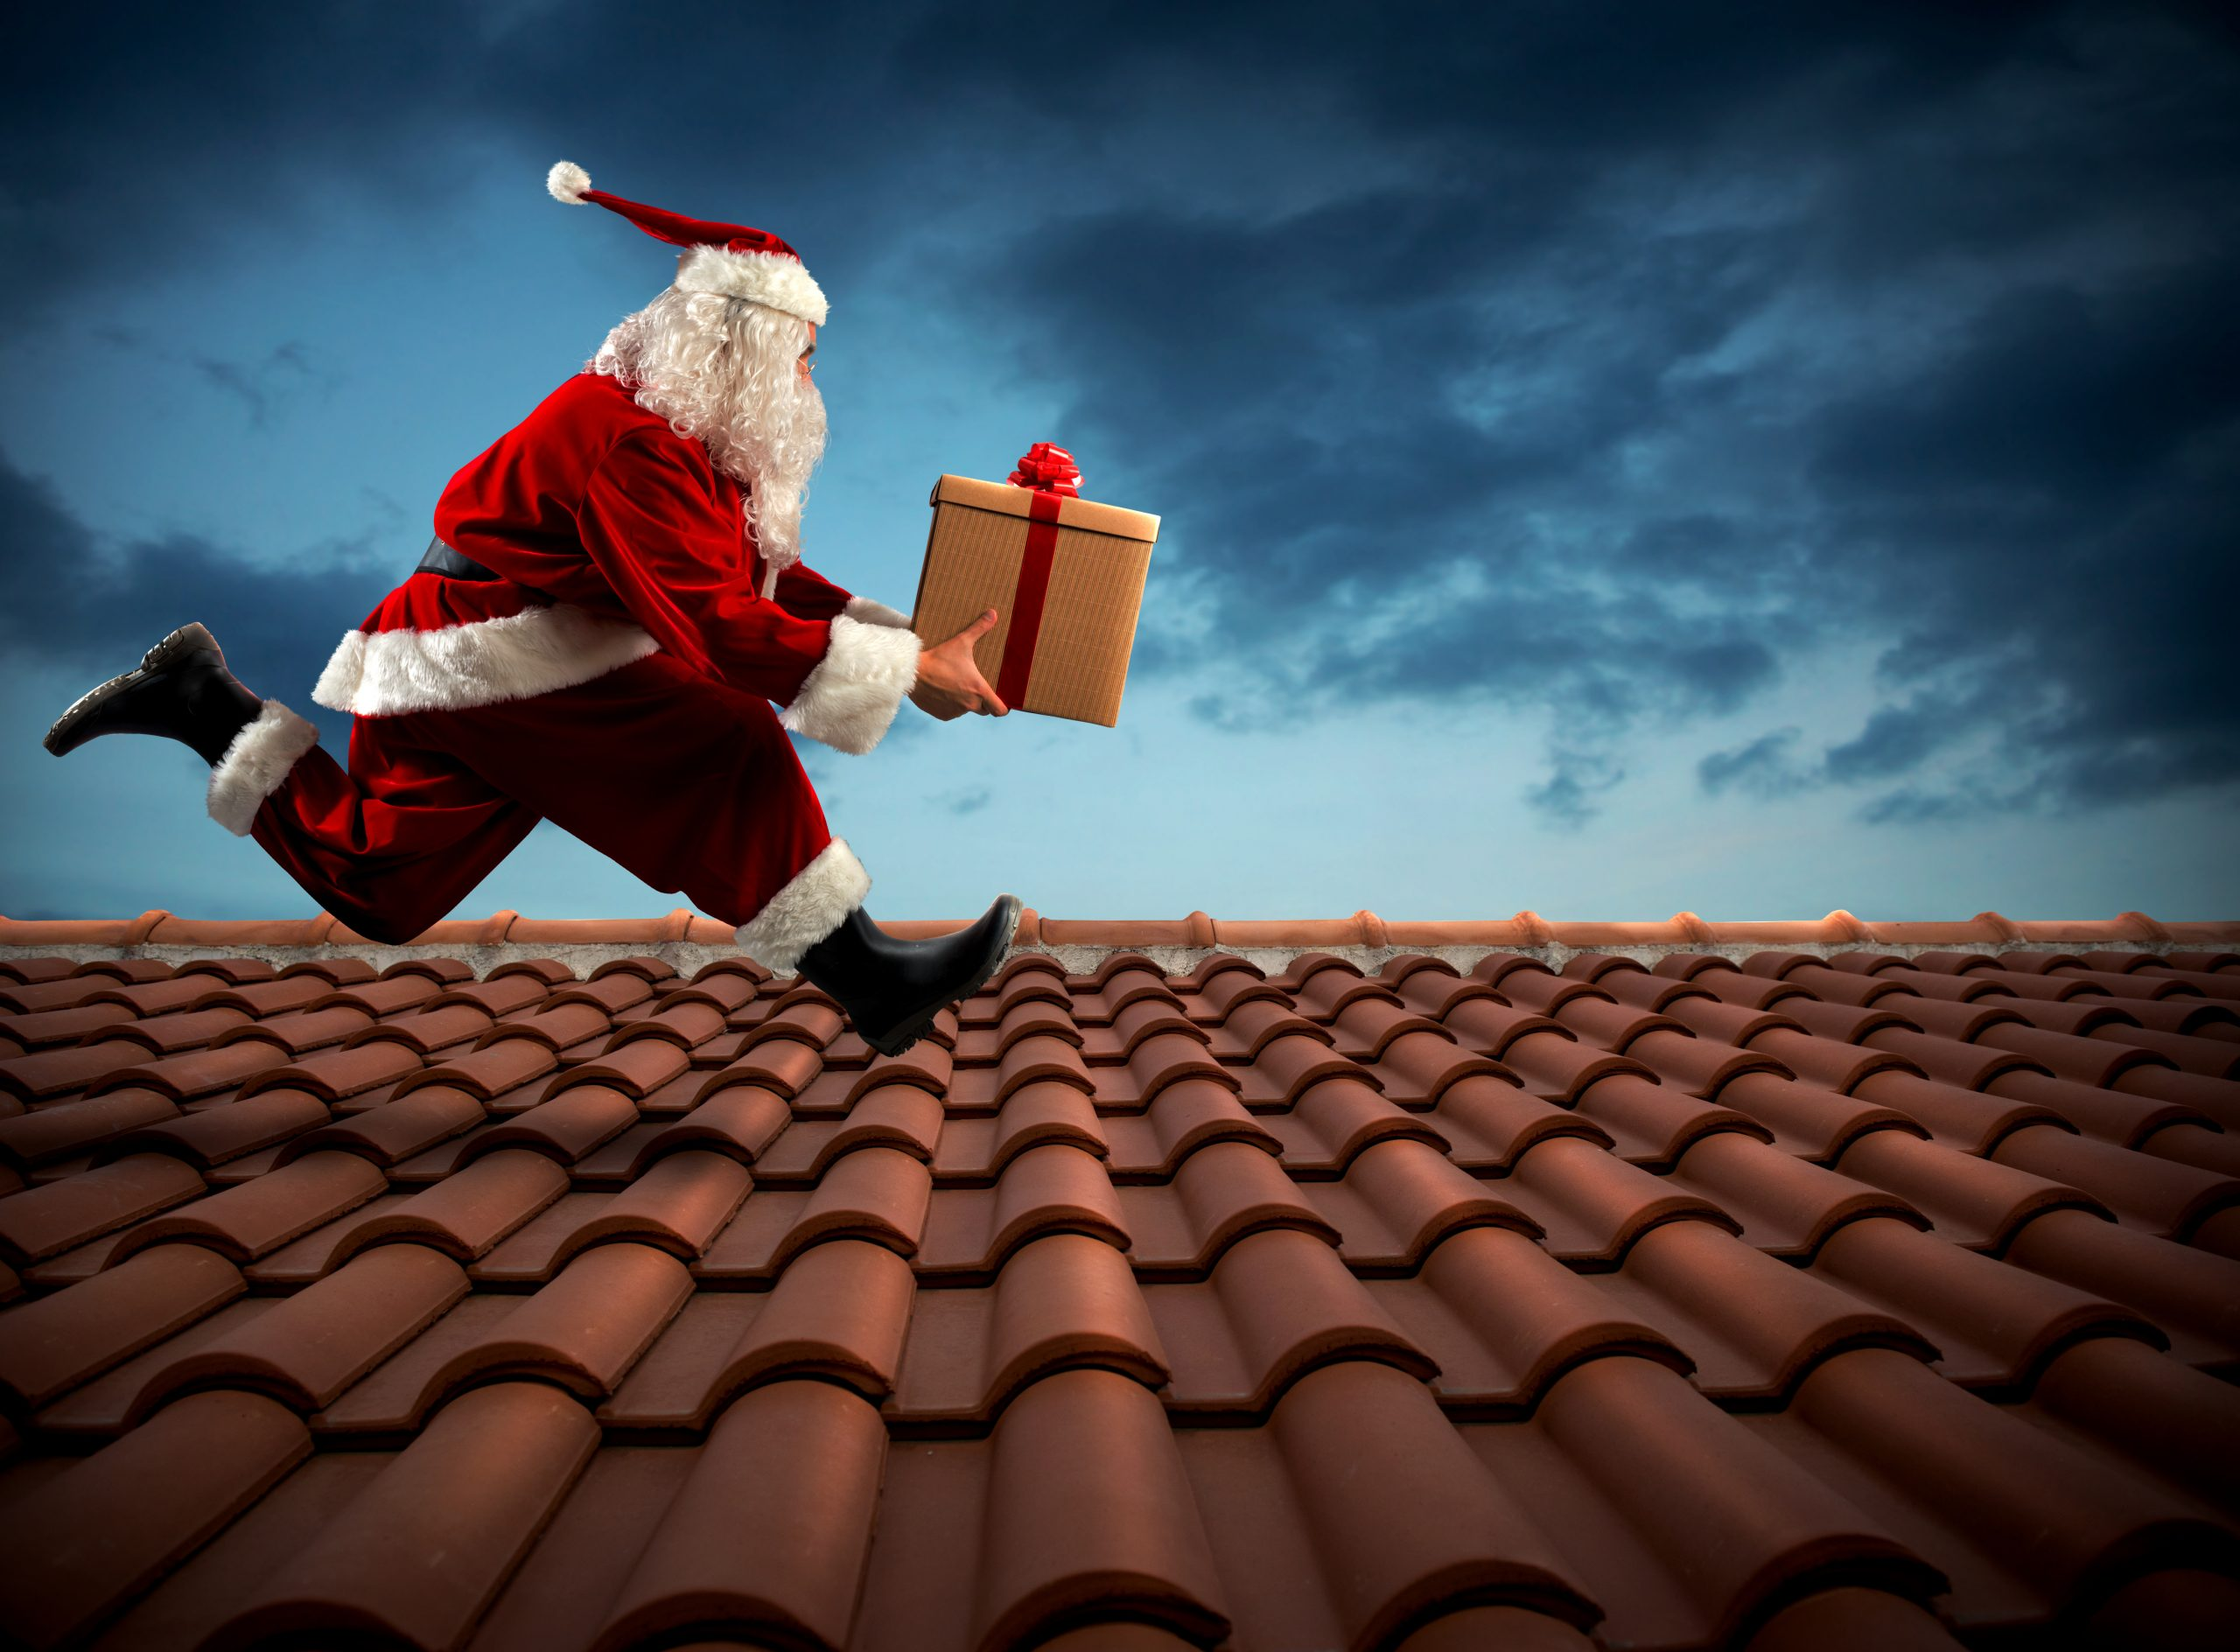 Santa Claus runs with a big present on a house roof